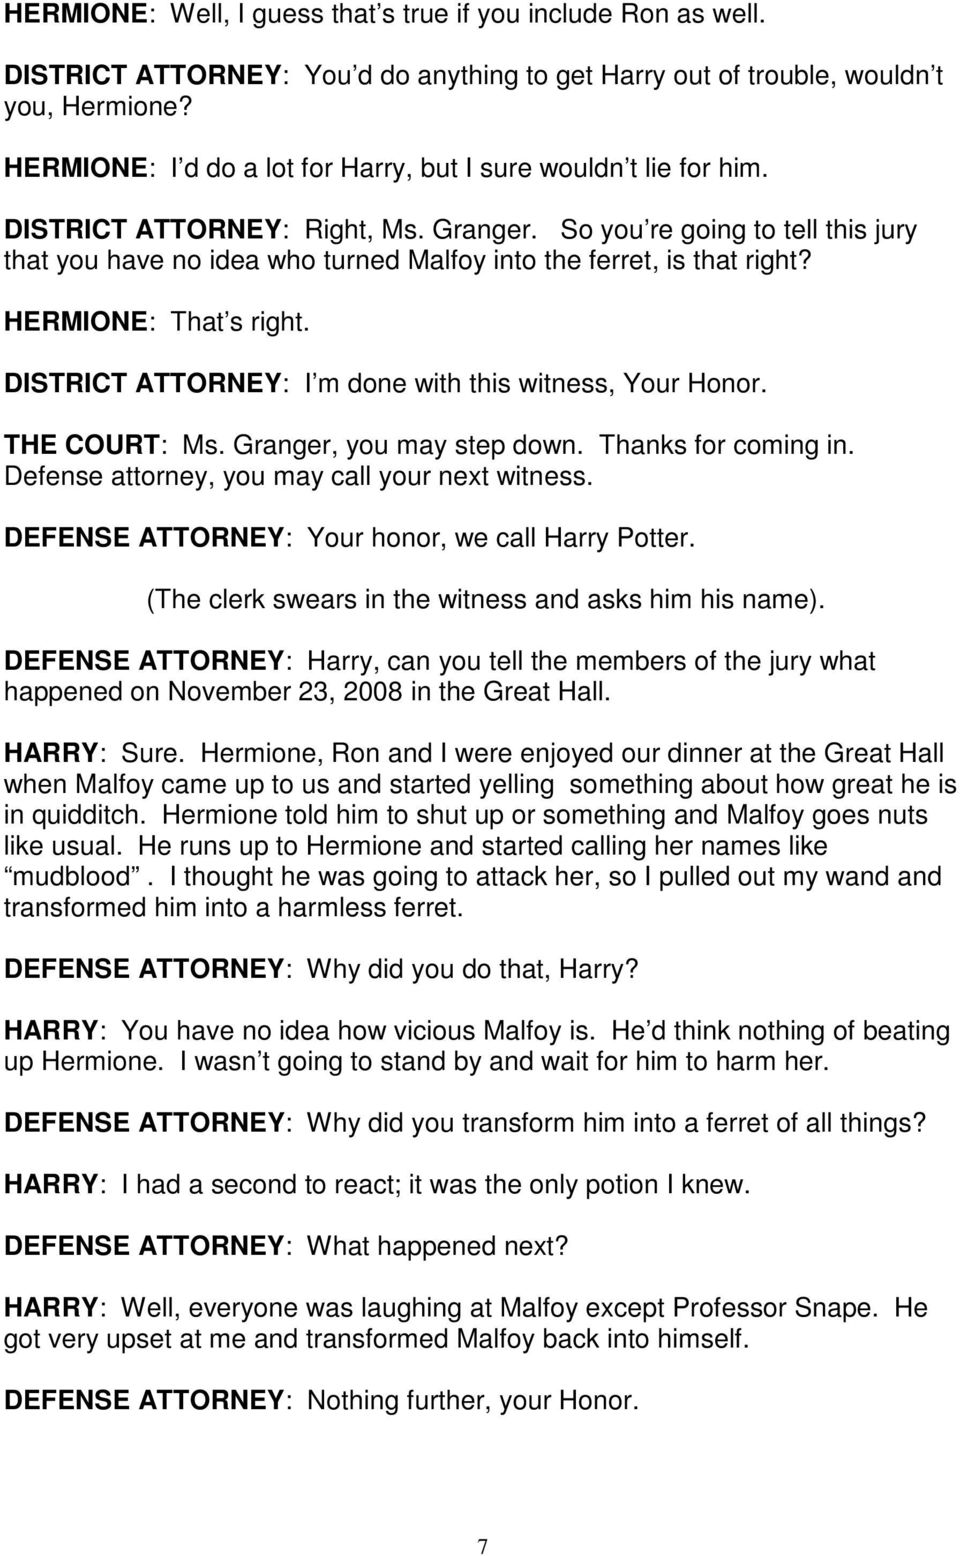 So you re going to tell this jury that you have no idea who turned Malfoy into the ferret, is that right? HERMIONE: That s right. DISTRICT ATTORNEY: I m done with this witness, Your Honor.